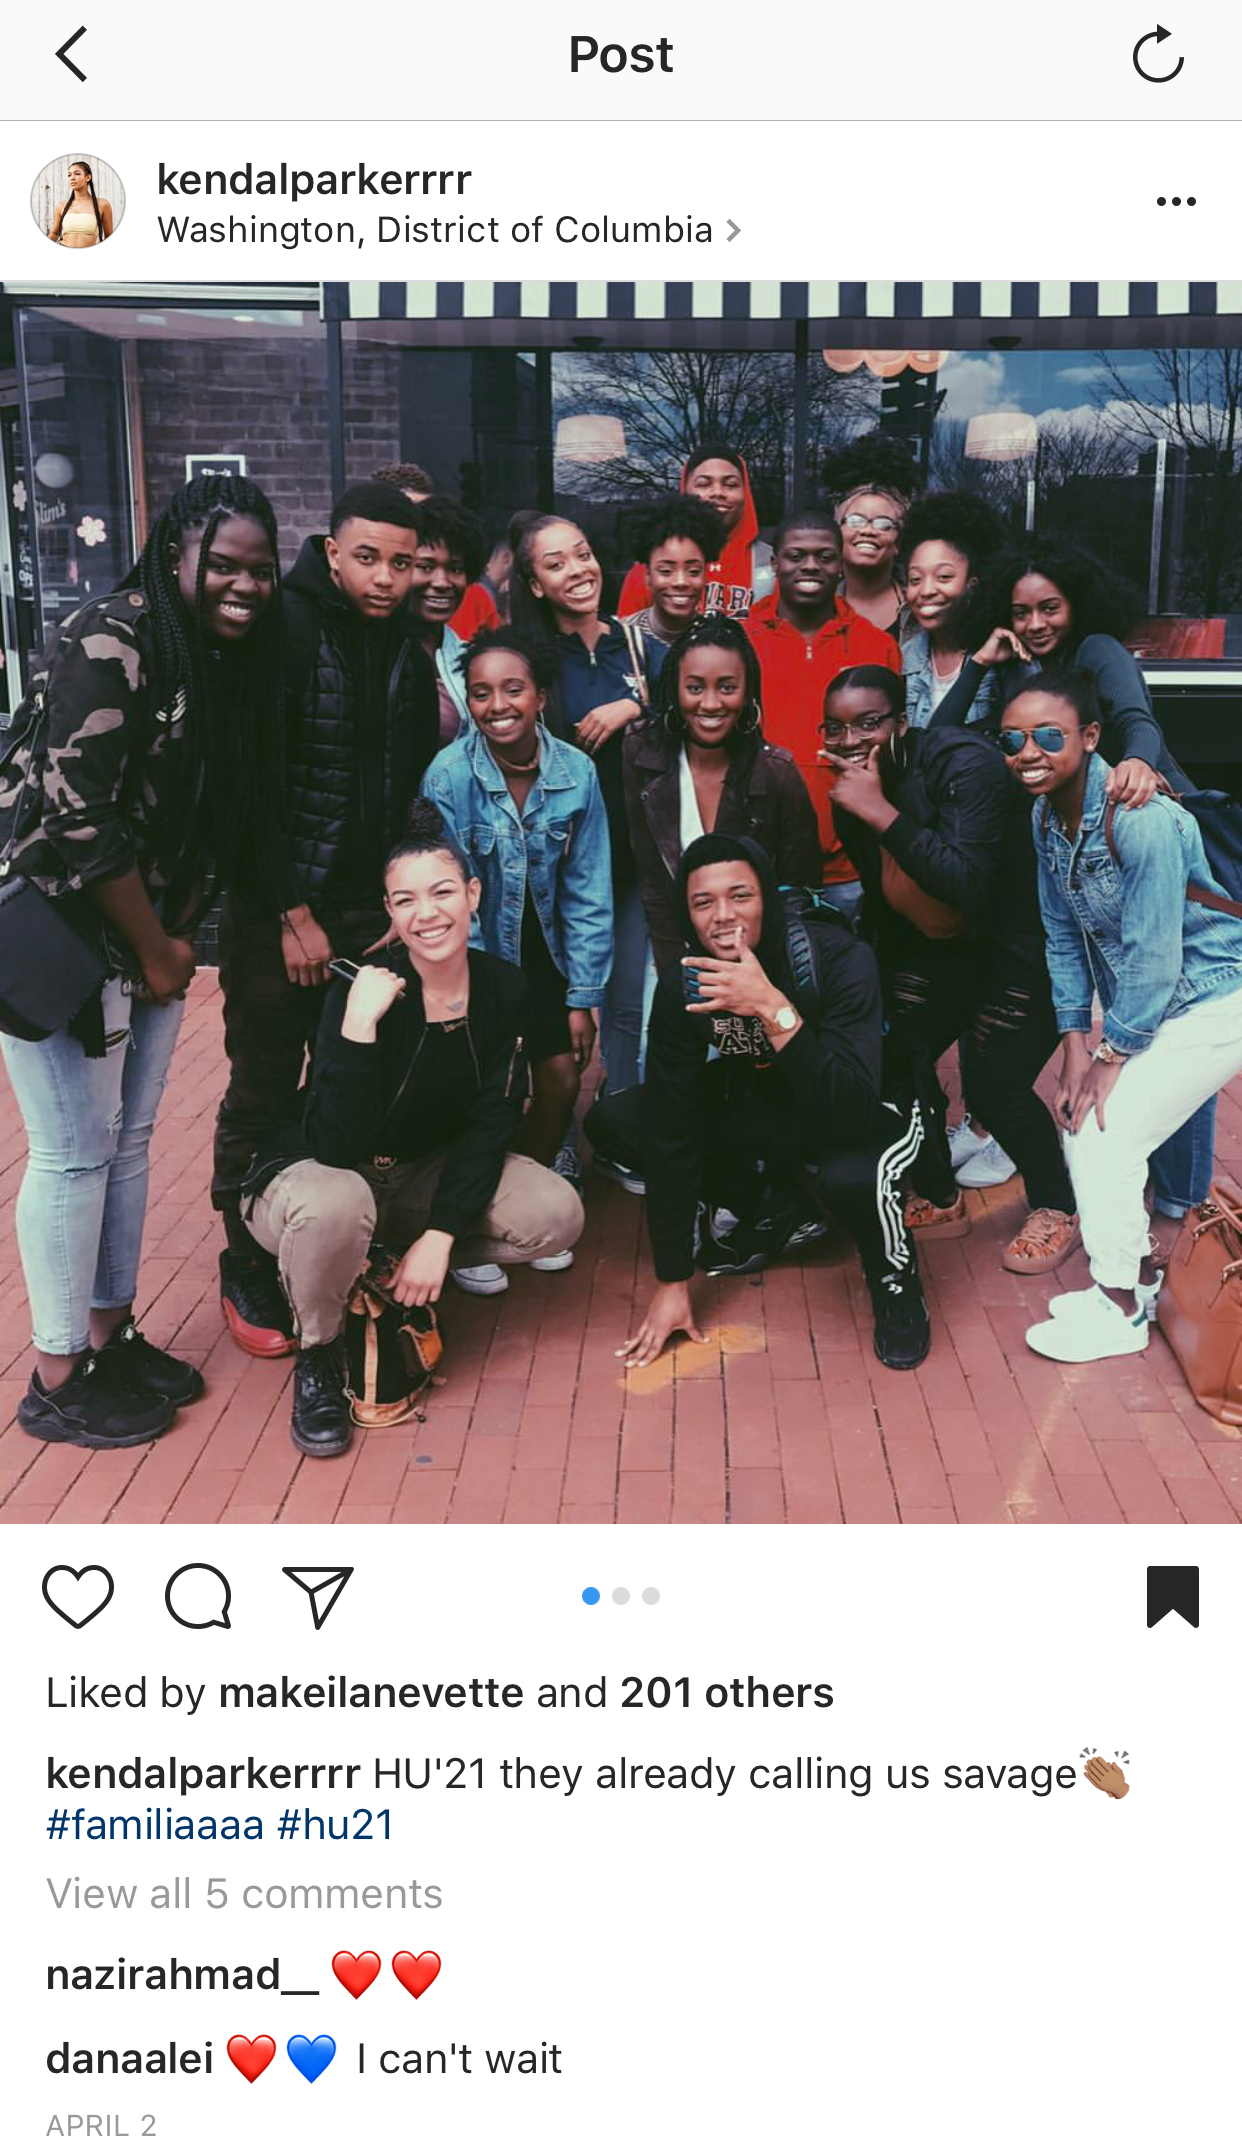 It all began with a hashtag #HU21 -